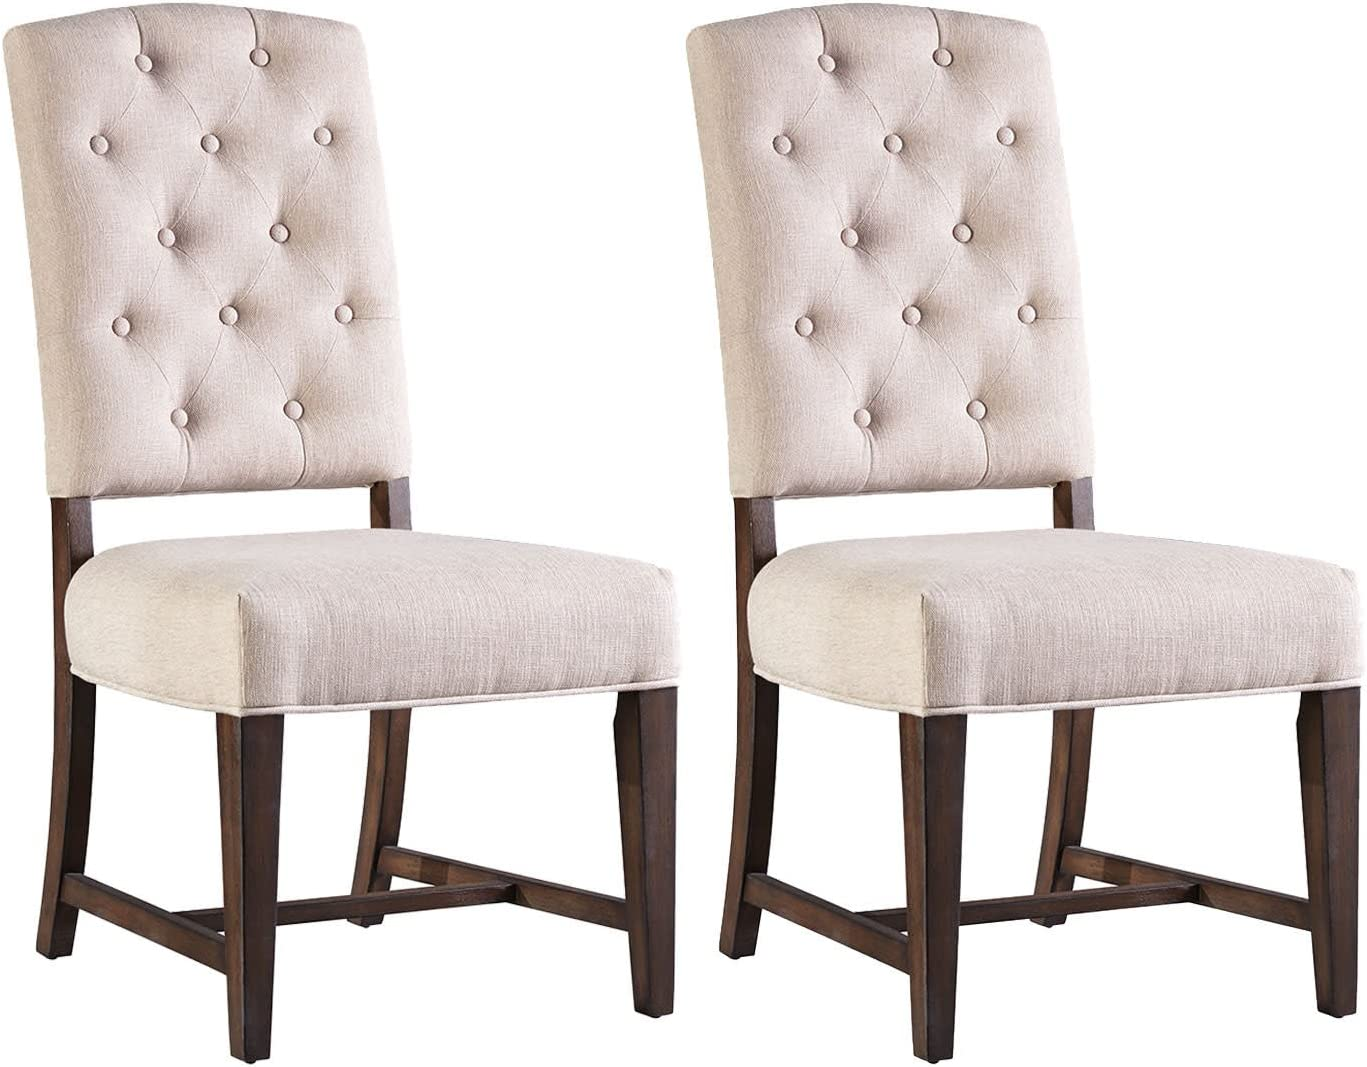 Standard Furniture Paisley Court 2-Pack Upholstered Side Chairs, Sand